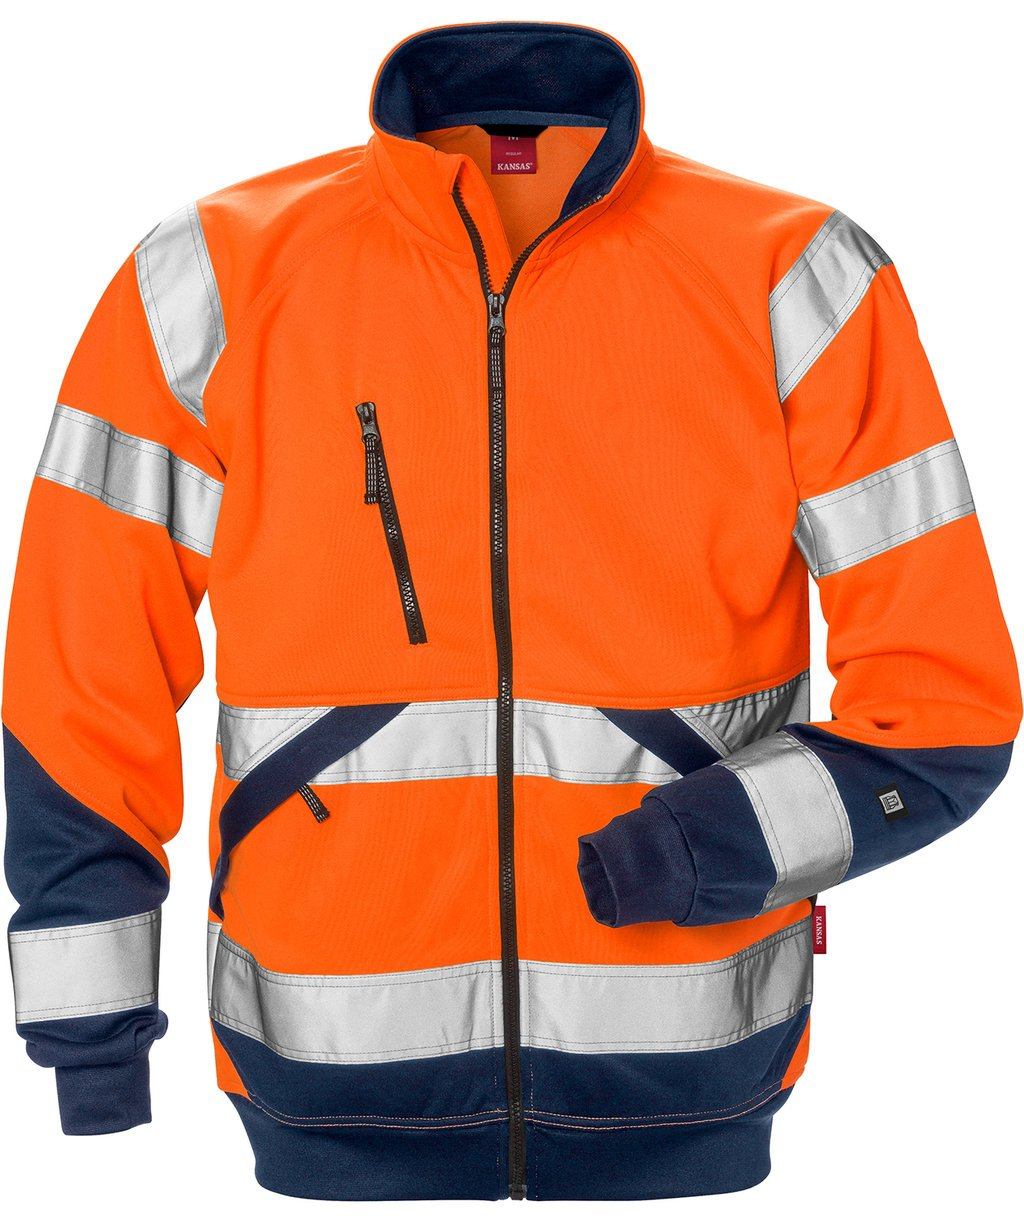 Kansas cardigan, Hi-Vis Orange/Marine